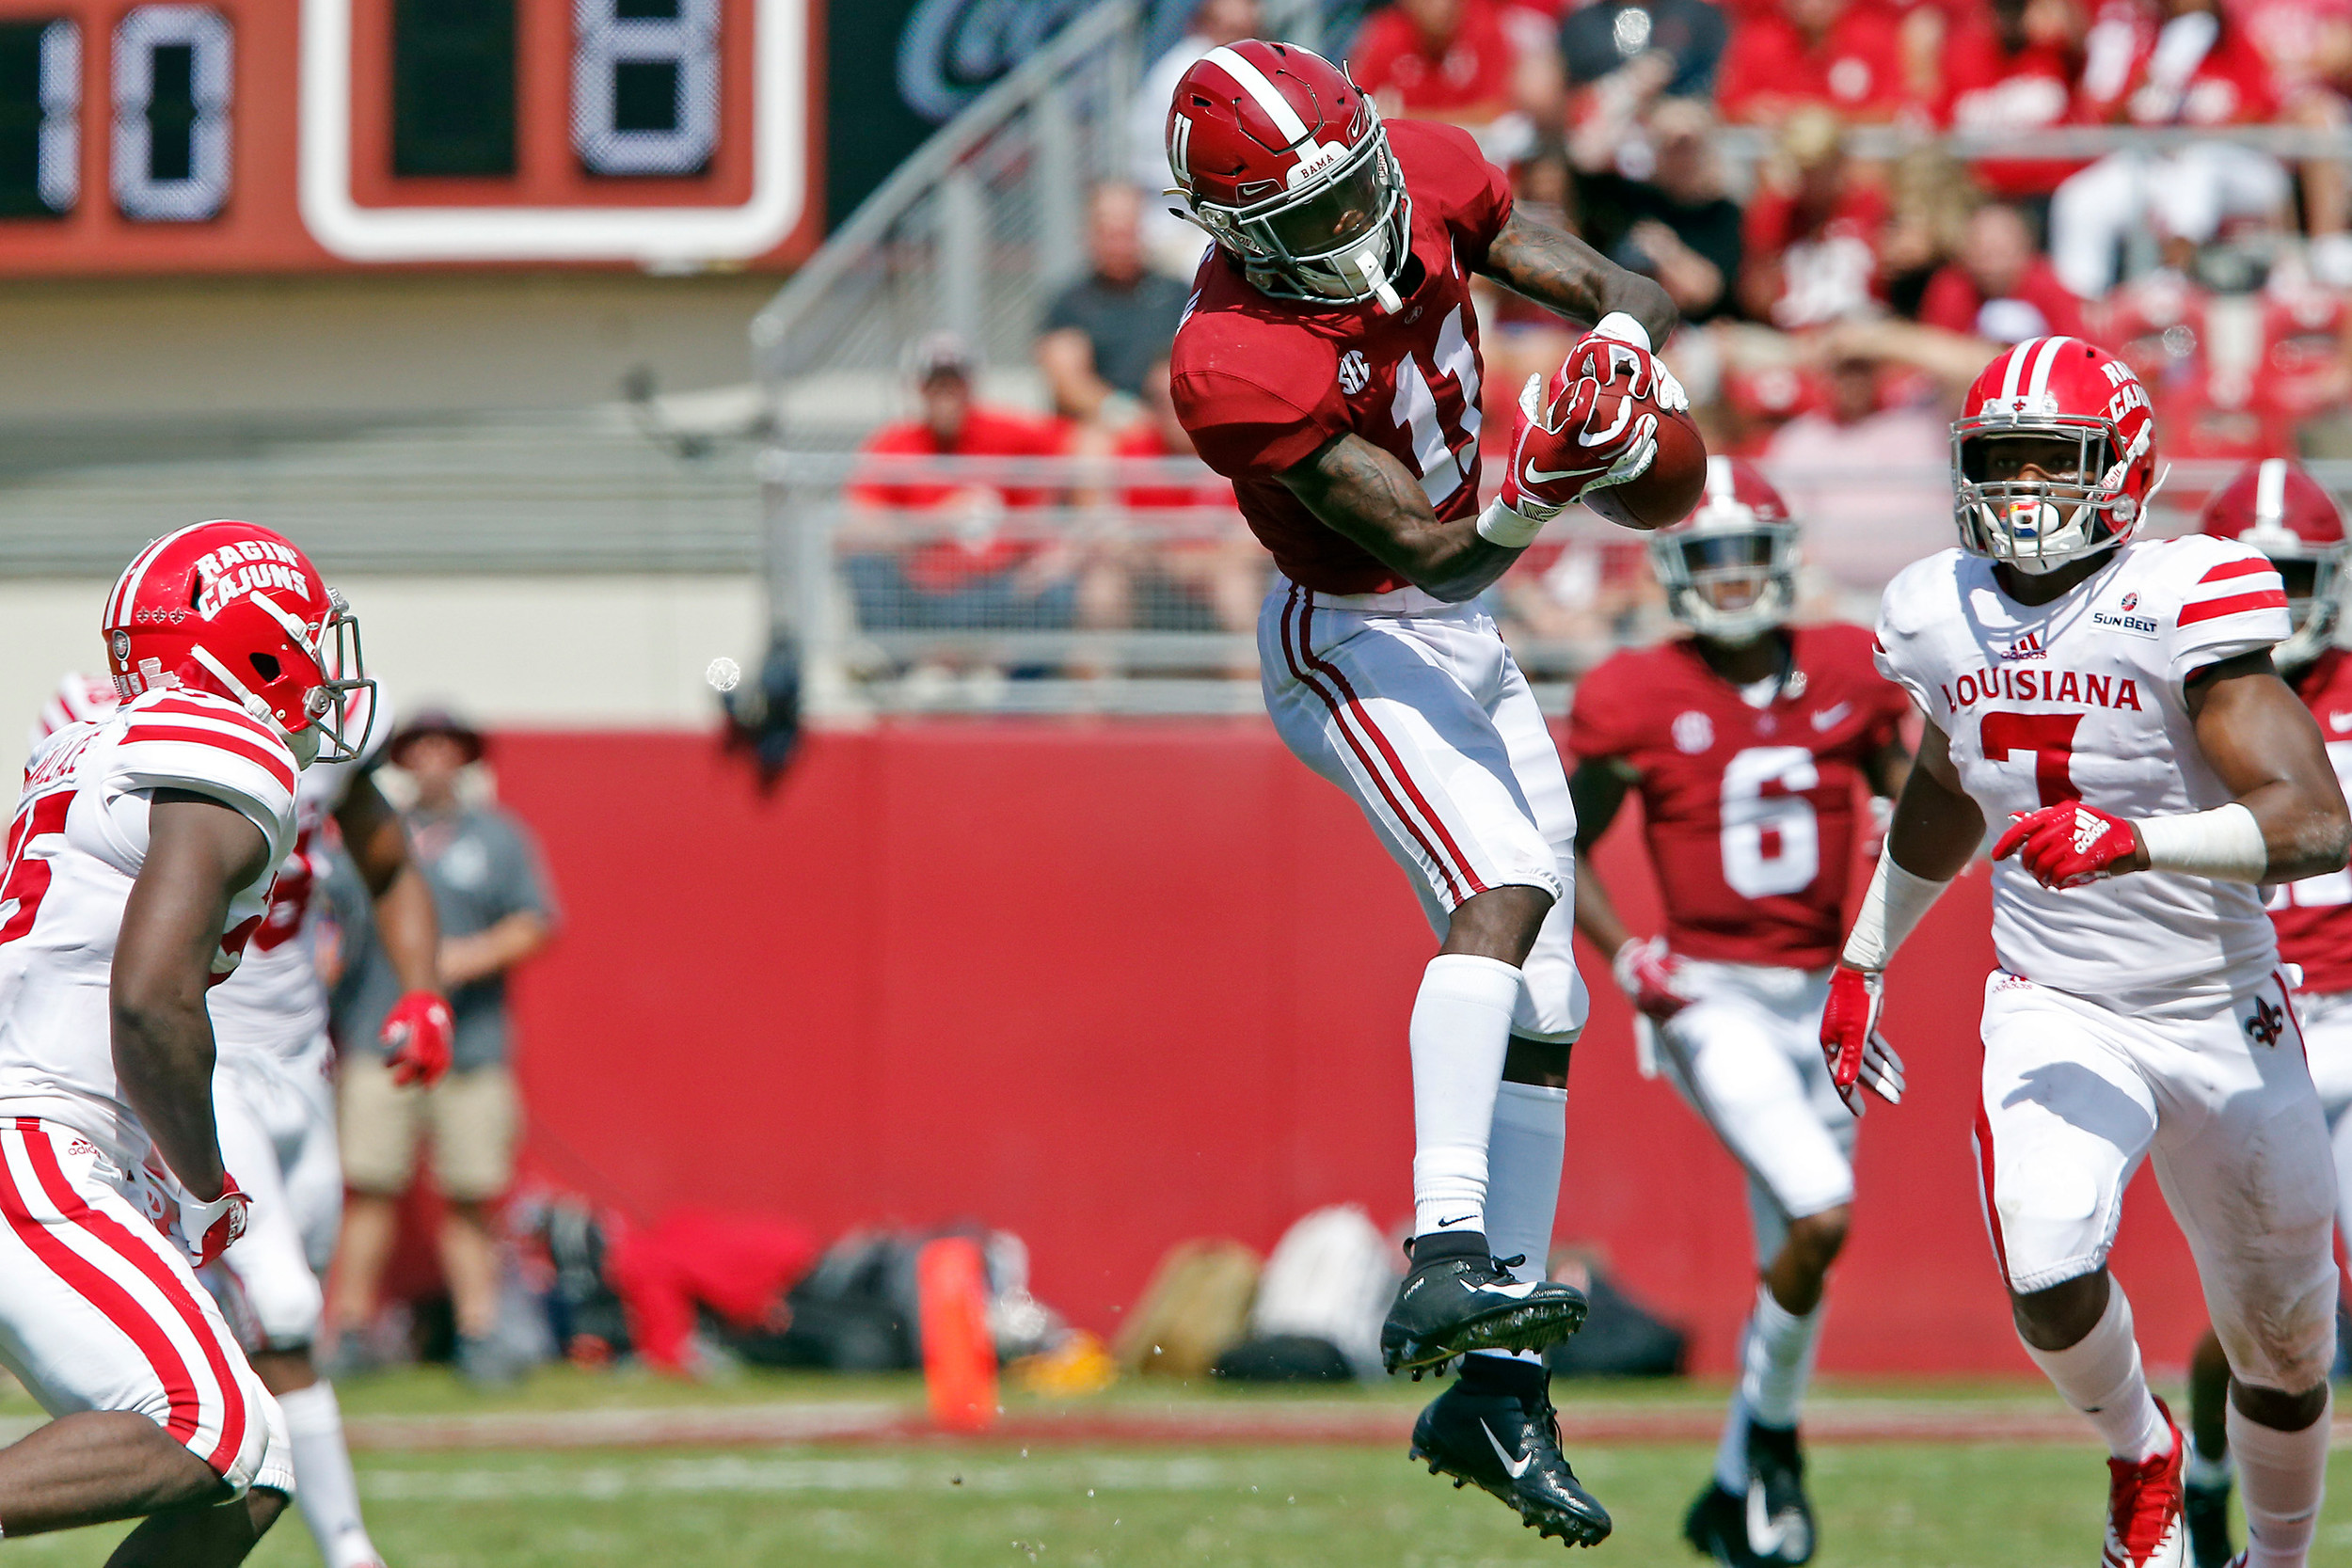 Alabama Crimson Tide wide receiver Henry Ruggs III (11) makes a reception at Bryant-Denny Stadium in Tuscaloosa, Al on September 29, 2018. Jason Clark / Daily Mountain Eagle